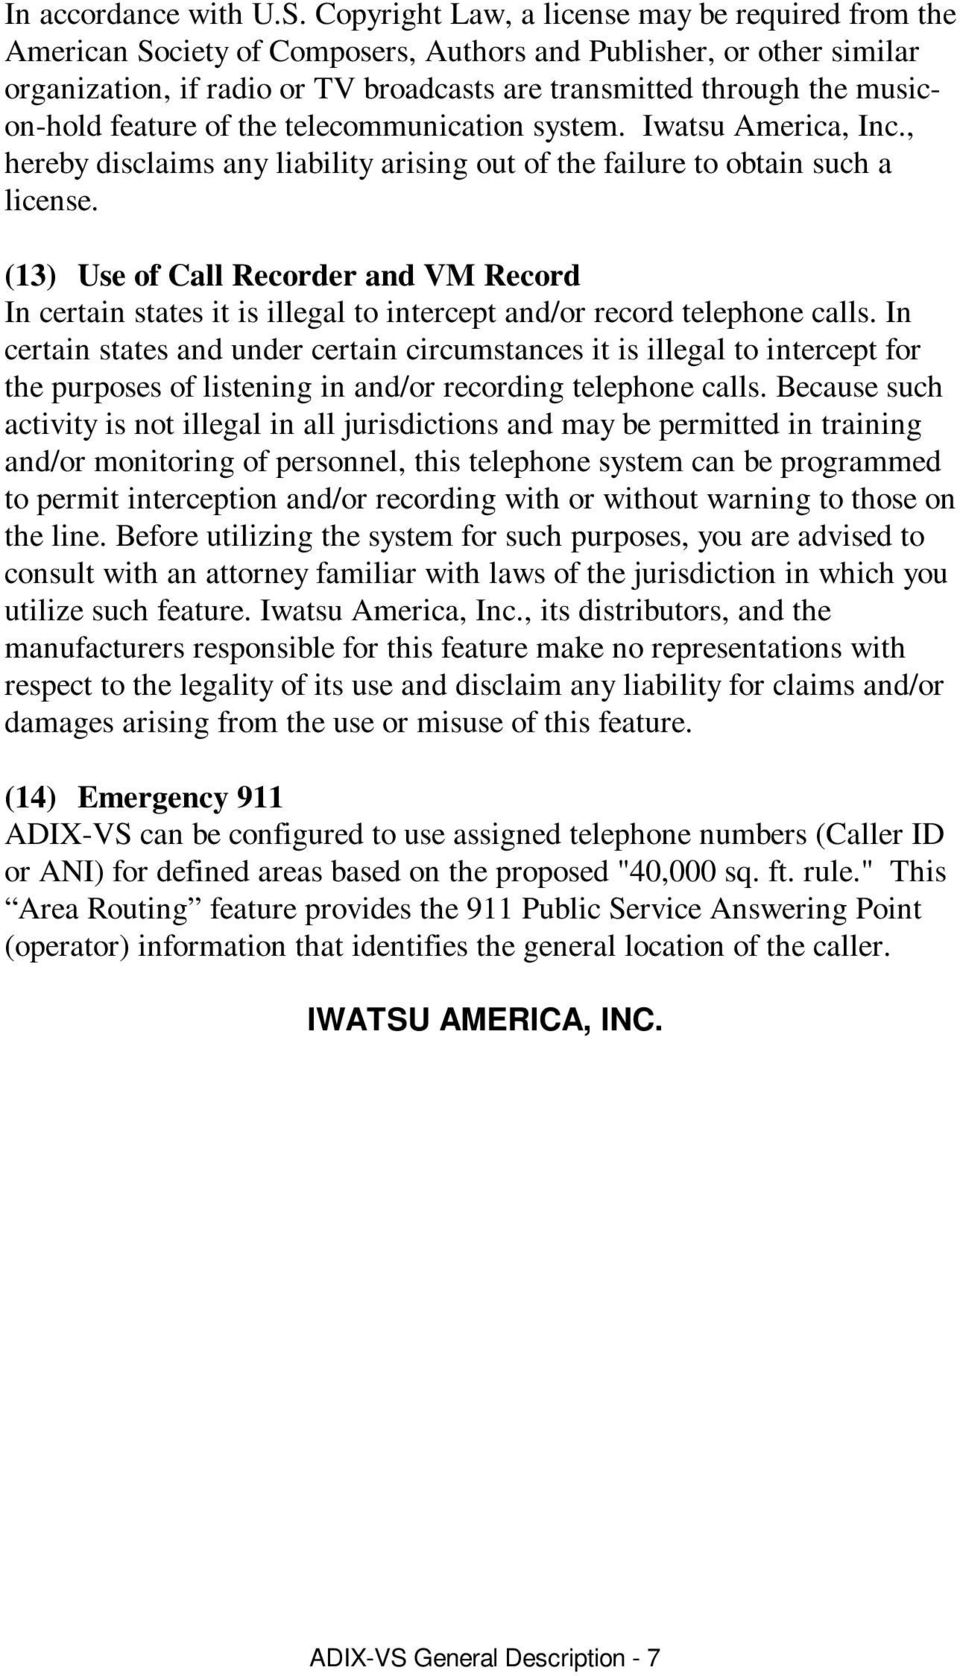 musicon-hold feature of the telecommunication system. Iwatsu America, Inc., hereby disclaims any liability arising out of the failure to obtain such a license.